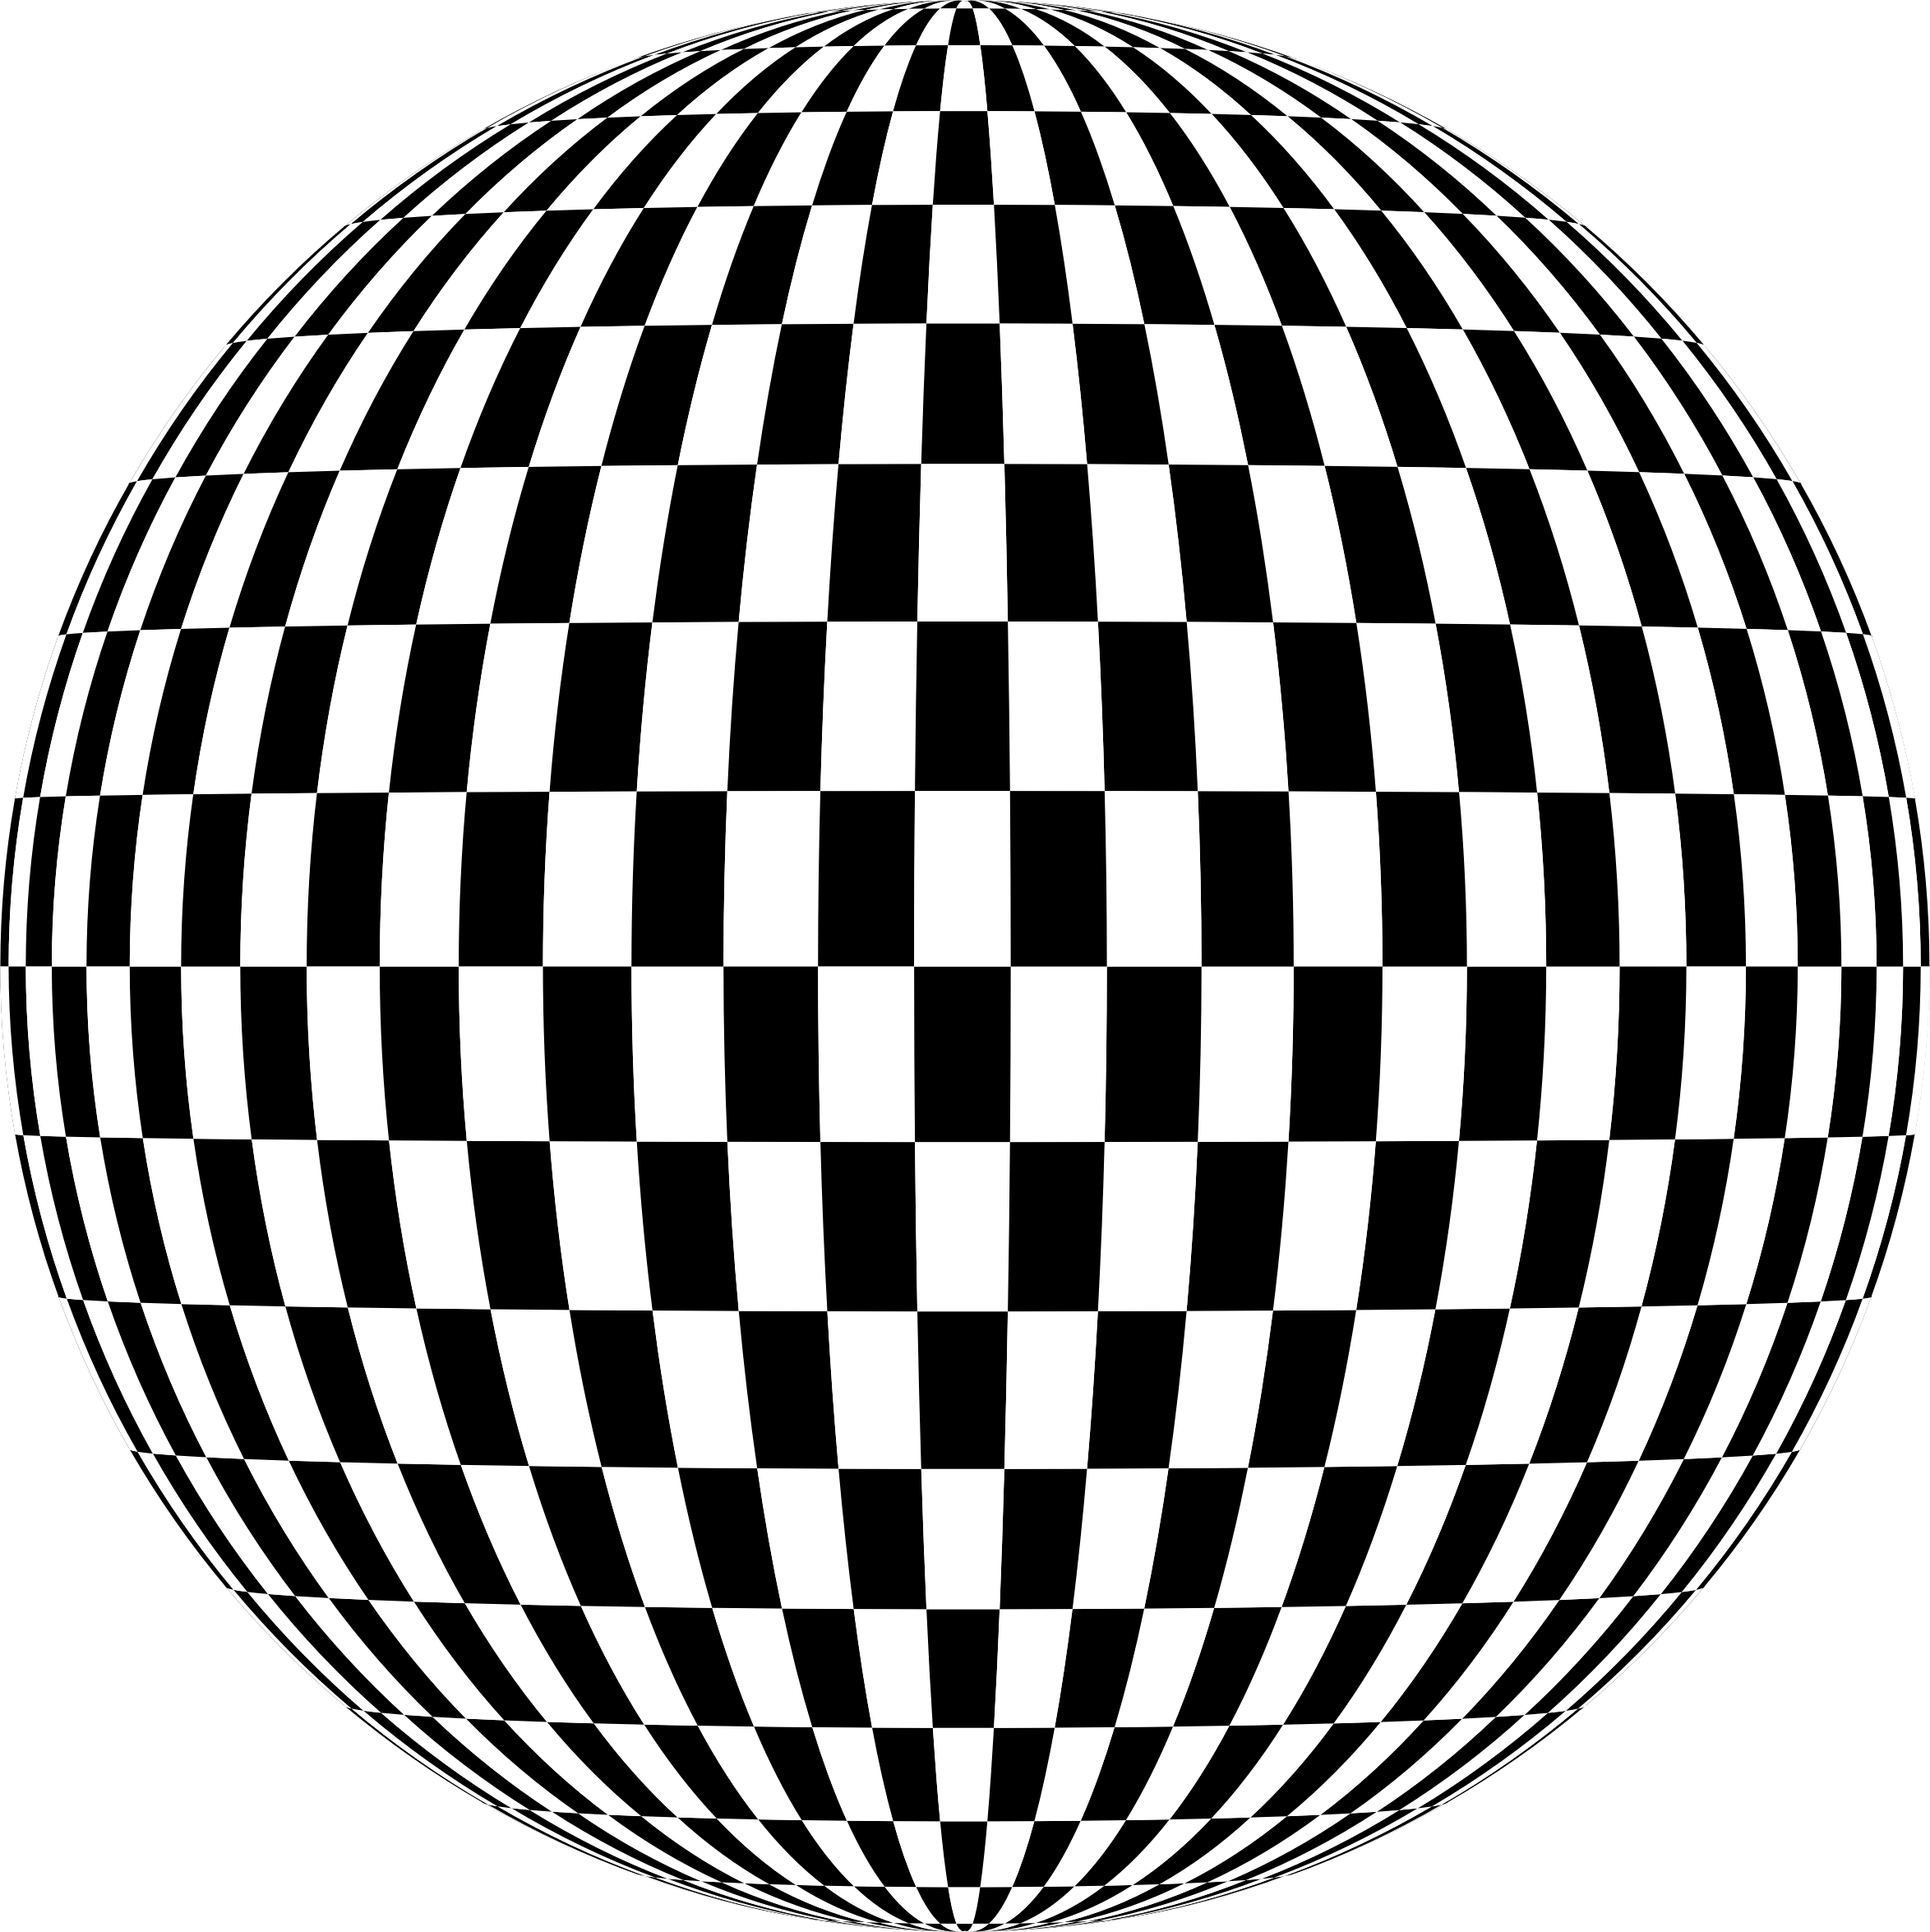 Floor clipart chekered. Checkered drawing at getdrawings